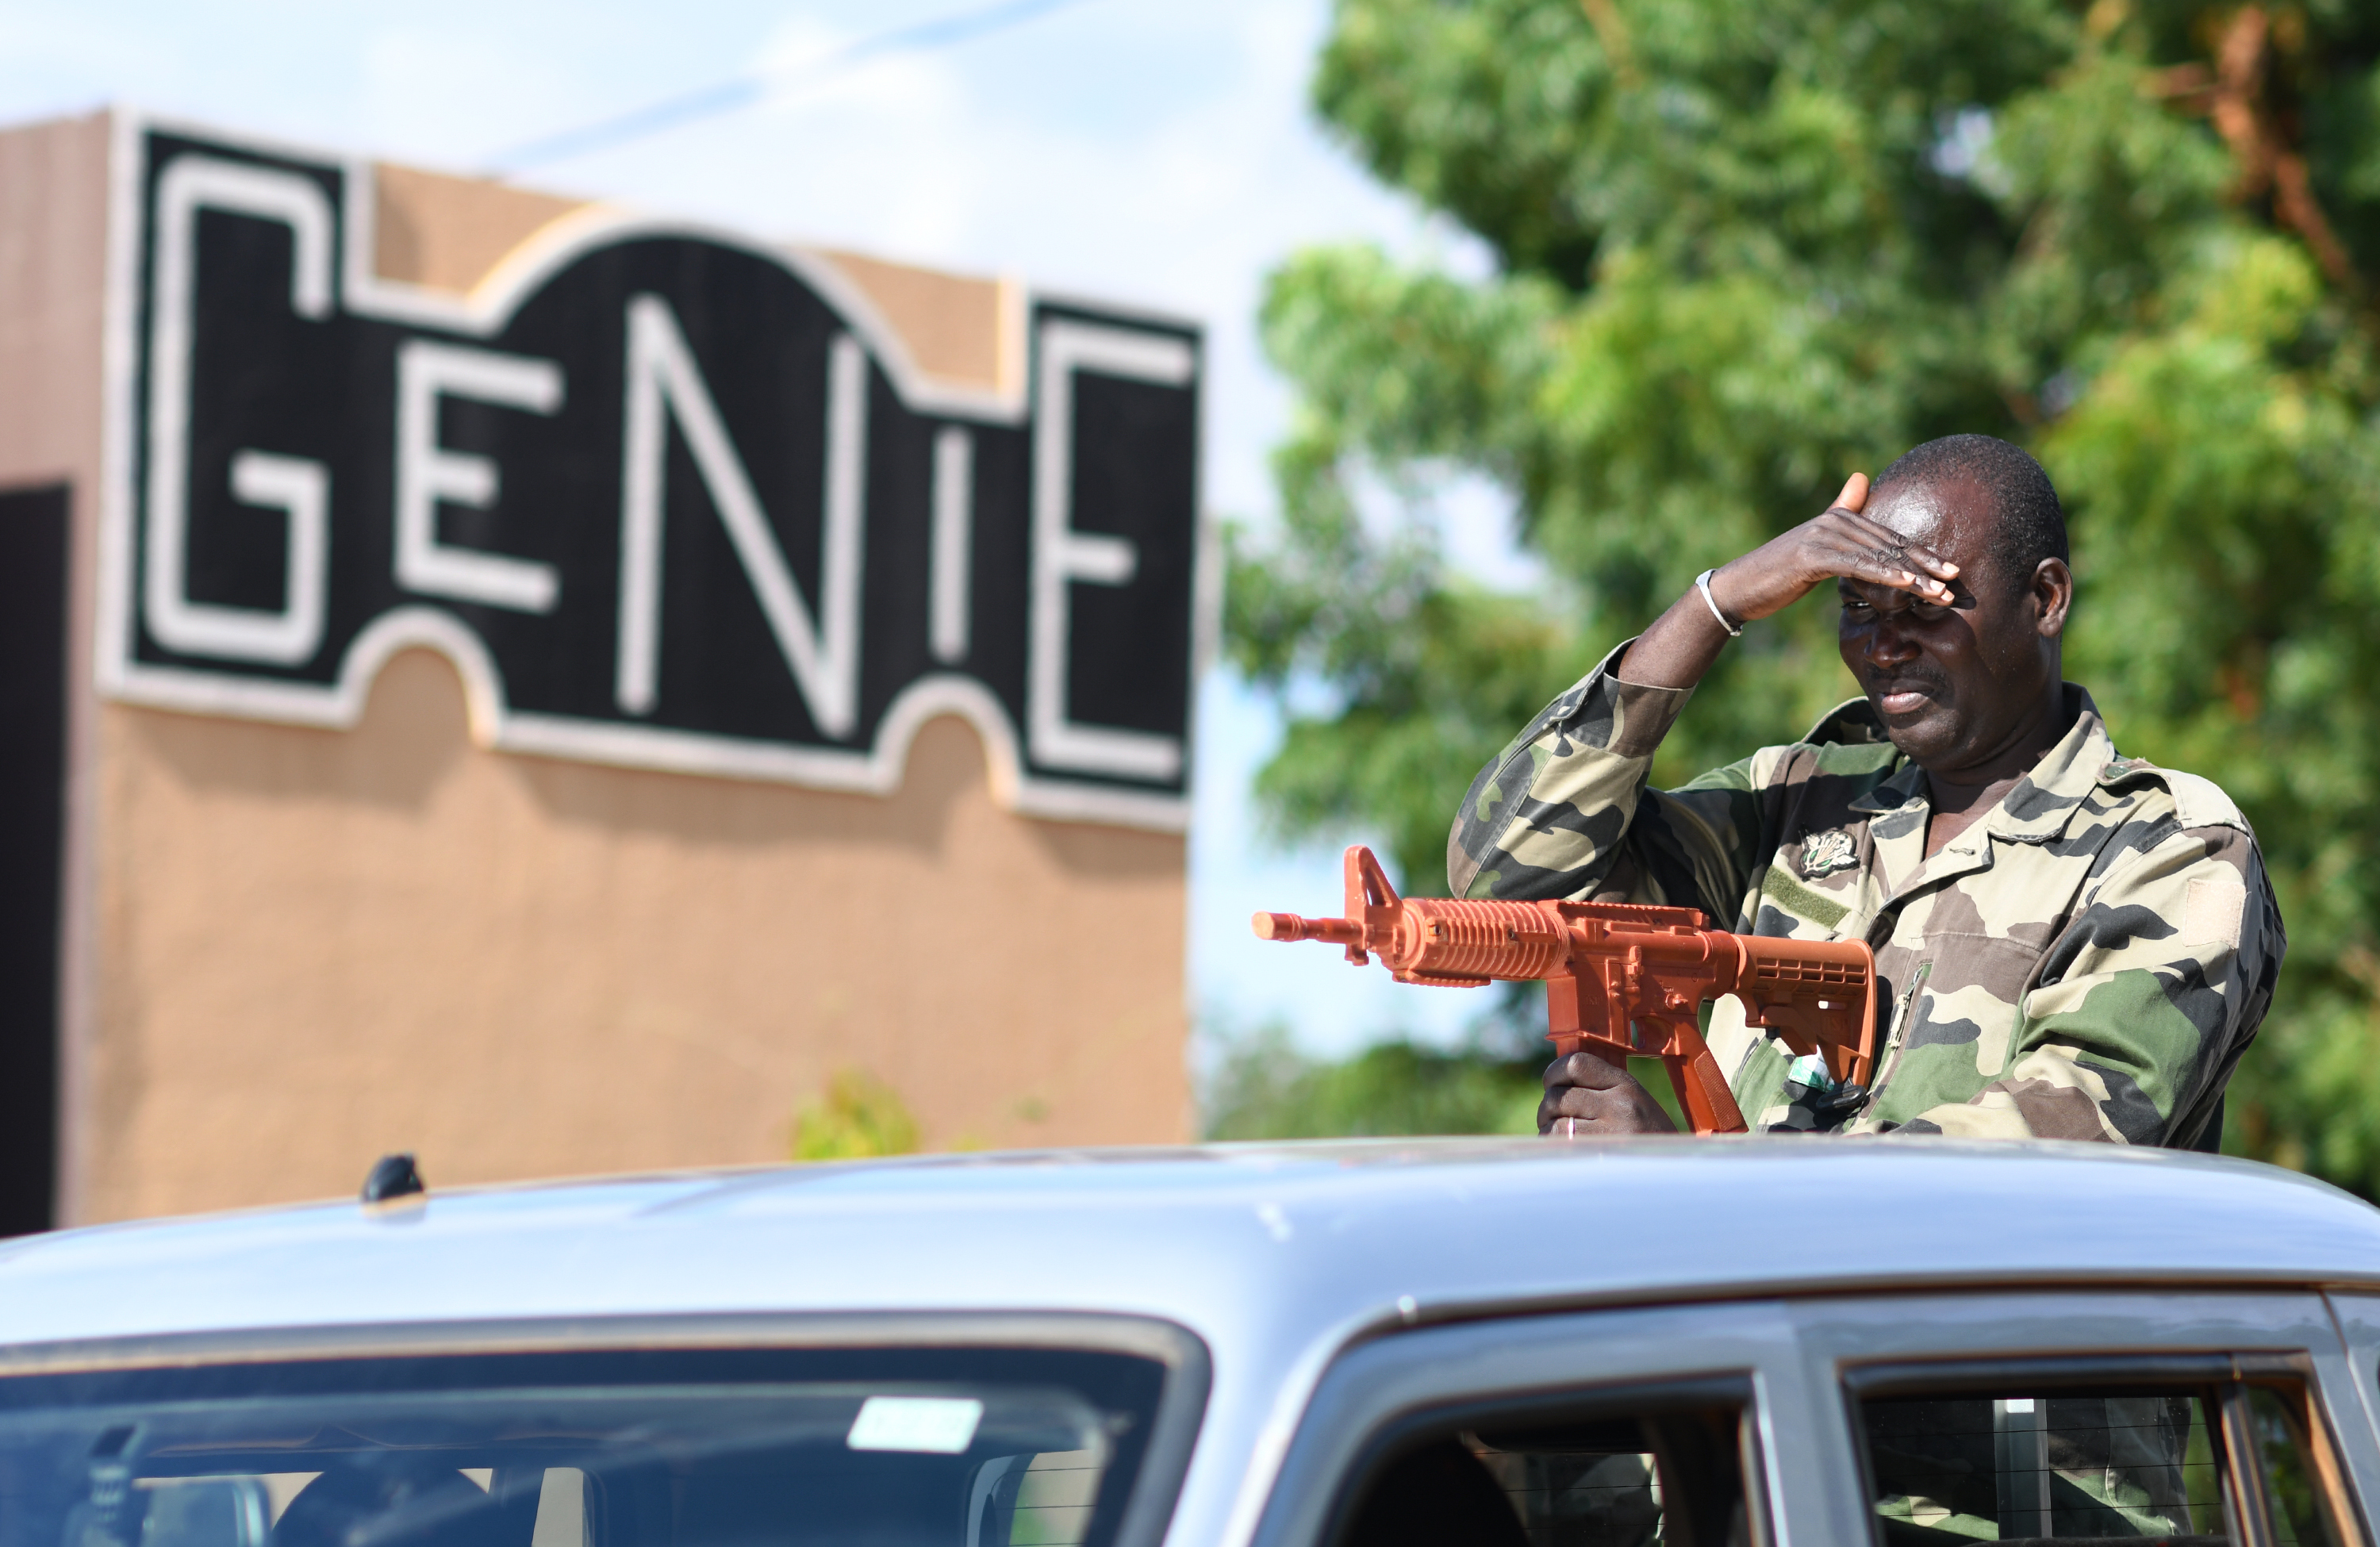 A Forces Armées Nigeriennes (Nigerien Armed Forces) Genie Unit member practices vehicle procedures during an Improvised Explosive Devices Awareness Course taught by members of the 768th Expeditionary Air Base Squadron Explosive Ordnance Disposal team and Security Forces Air Advisors in Niamey, Niger, Oct. 11, 2019. The course is part of a curriculum spanning several months designed to improve the FAN's effectiveness and survivability once they deploy to combat the violent extremist organizations in West Africa. (U.S. Air Force photo by Staff Sgt. Alex Fox Echols III)